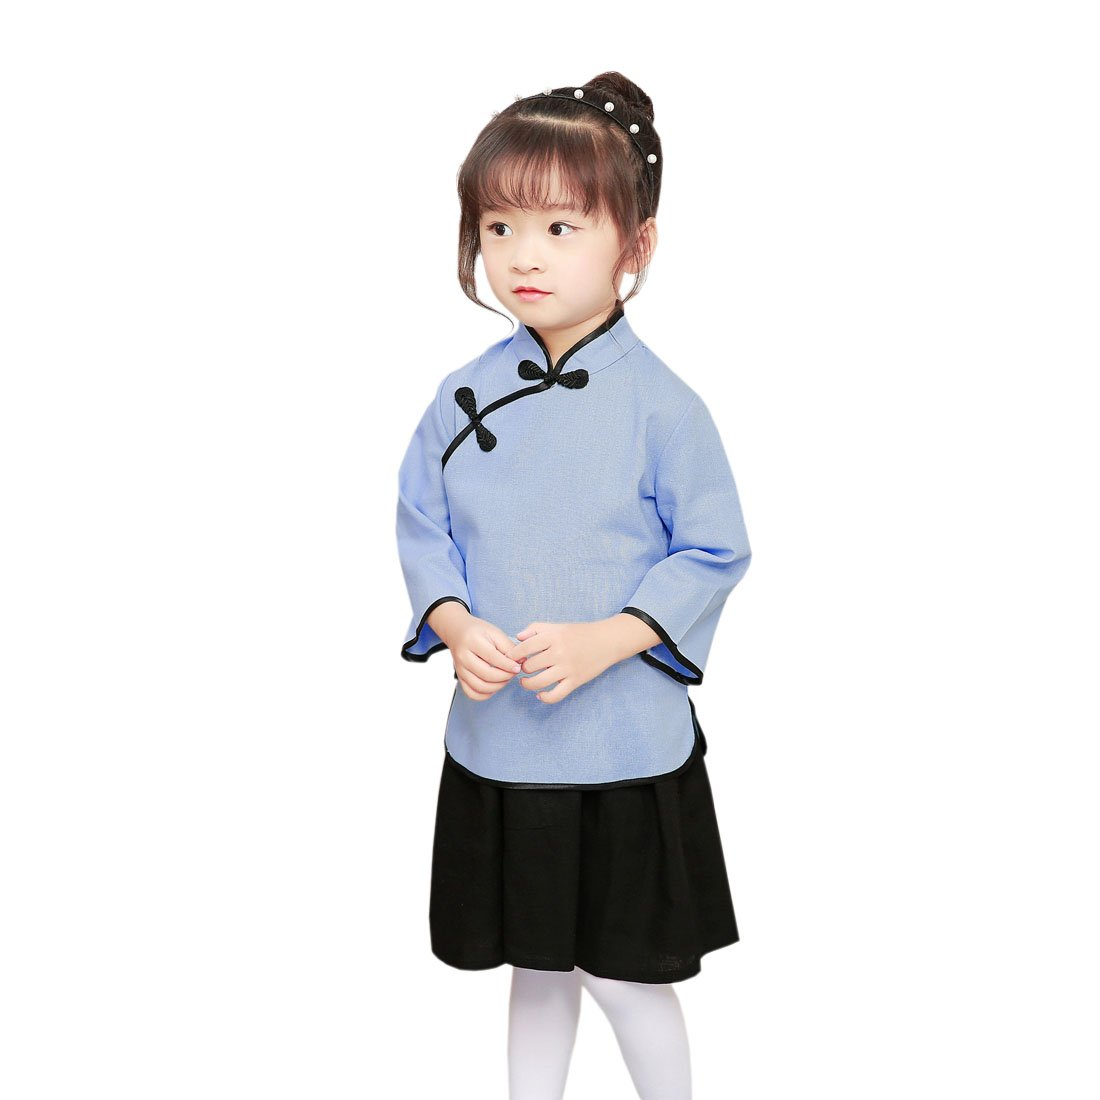 ACVIP Little Girls Solid Color Chinese Cheongsam Tops and Skirt (7-8 years/Tag 150, Light Blue)